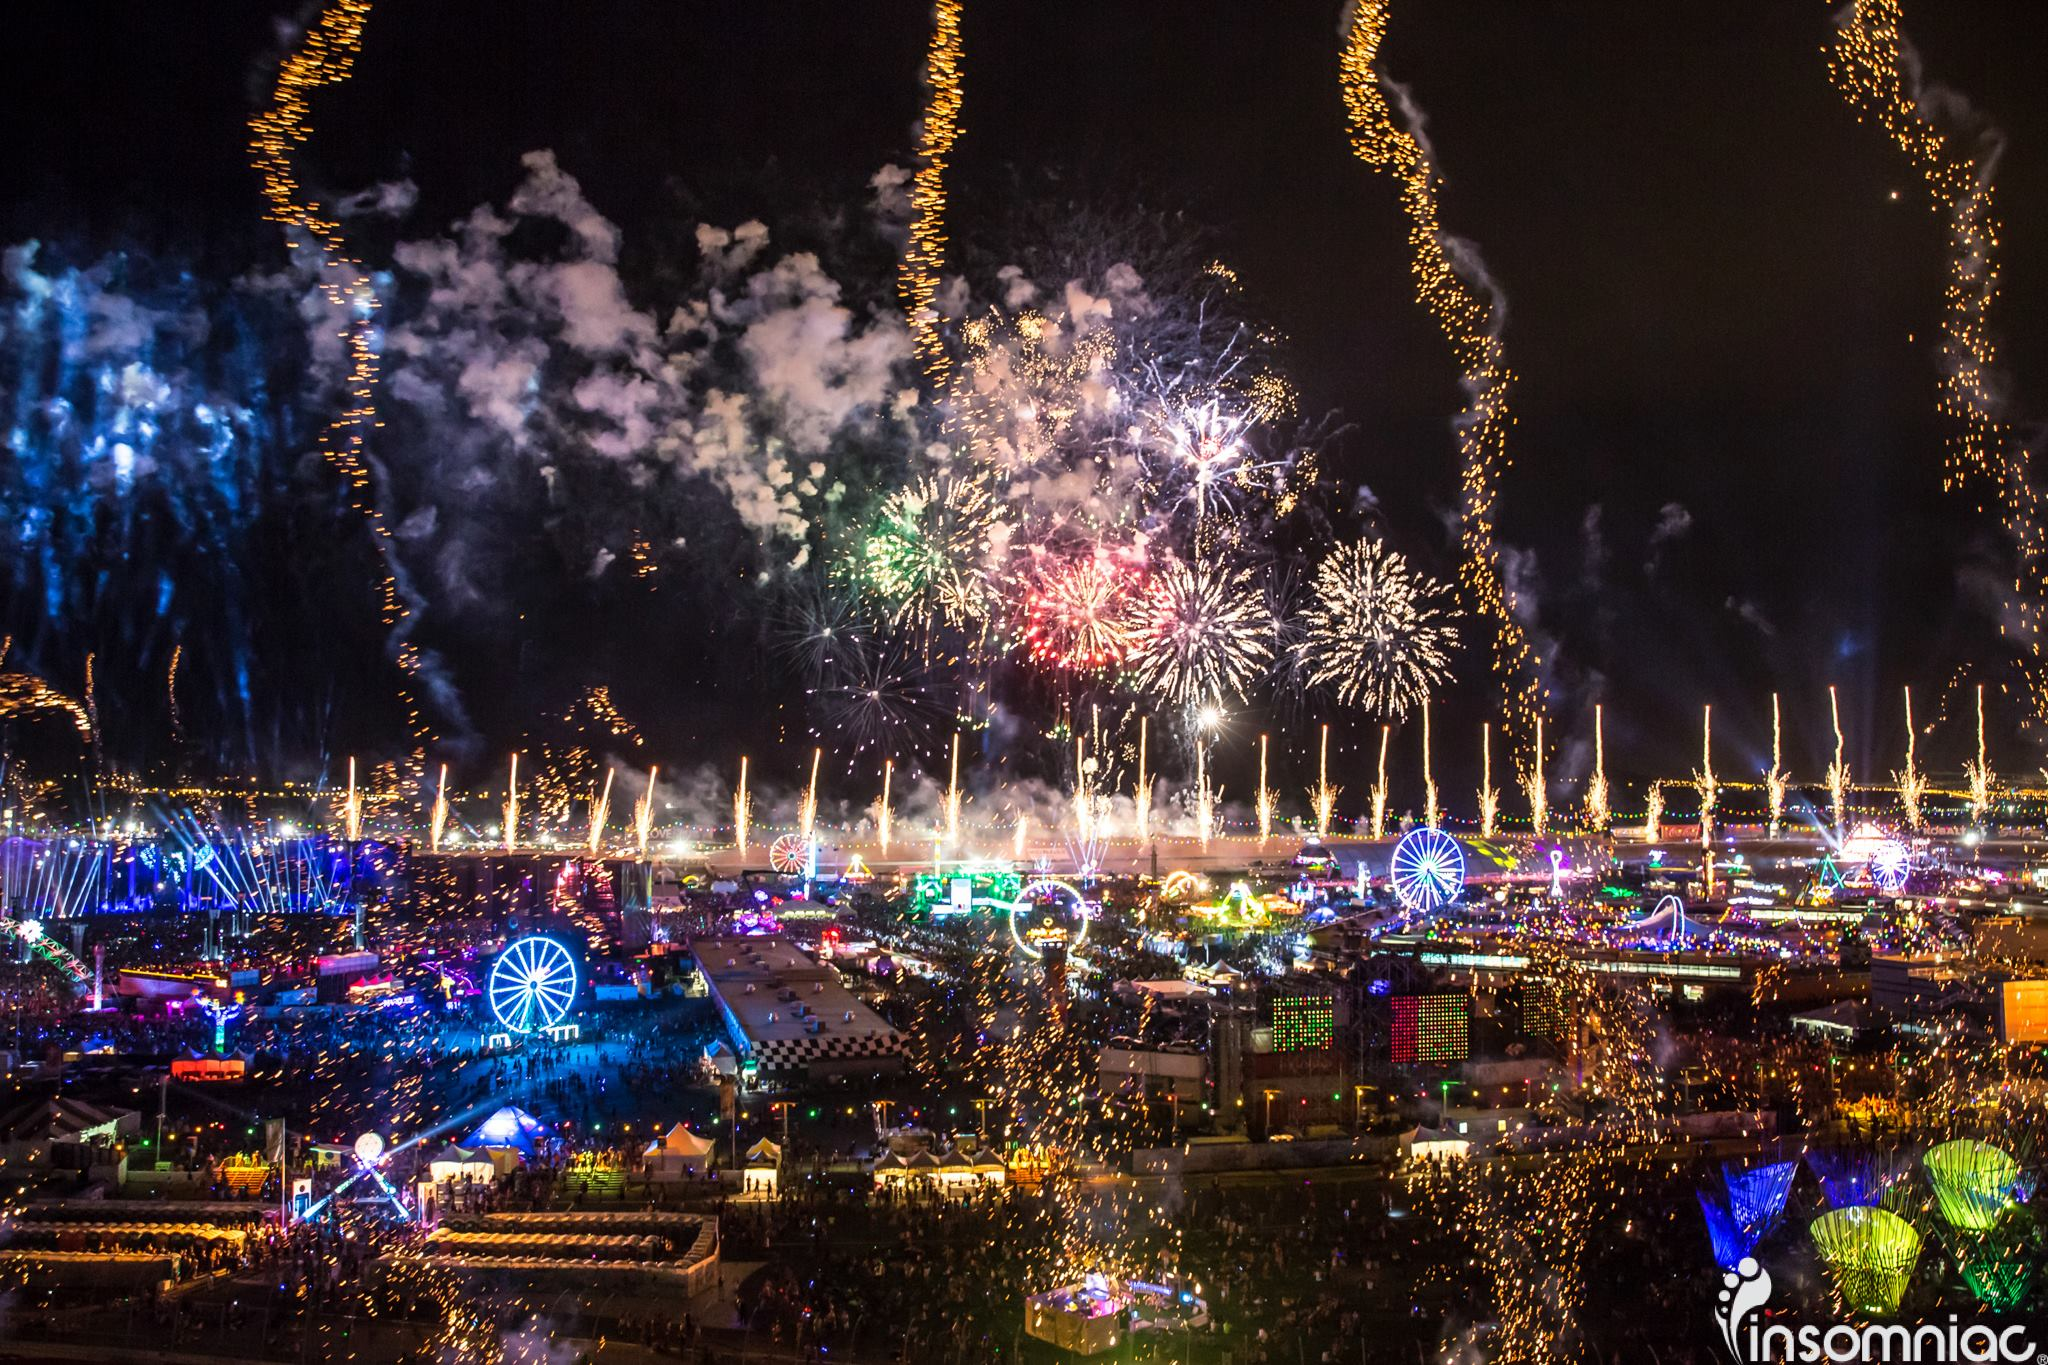 Best Hd Images Of Edc Vegas 2014 Electricdaisycarnival